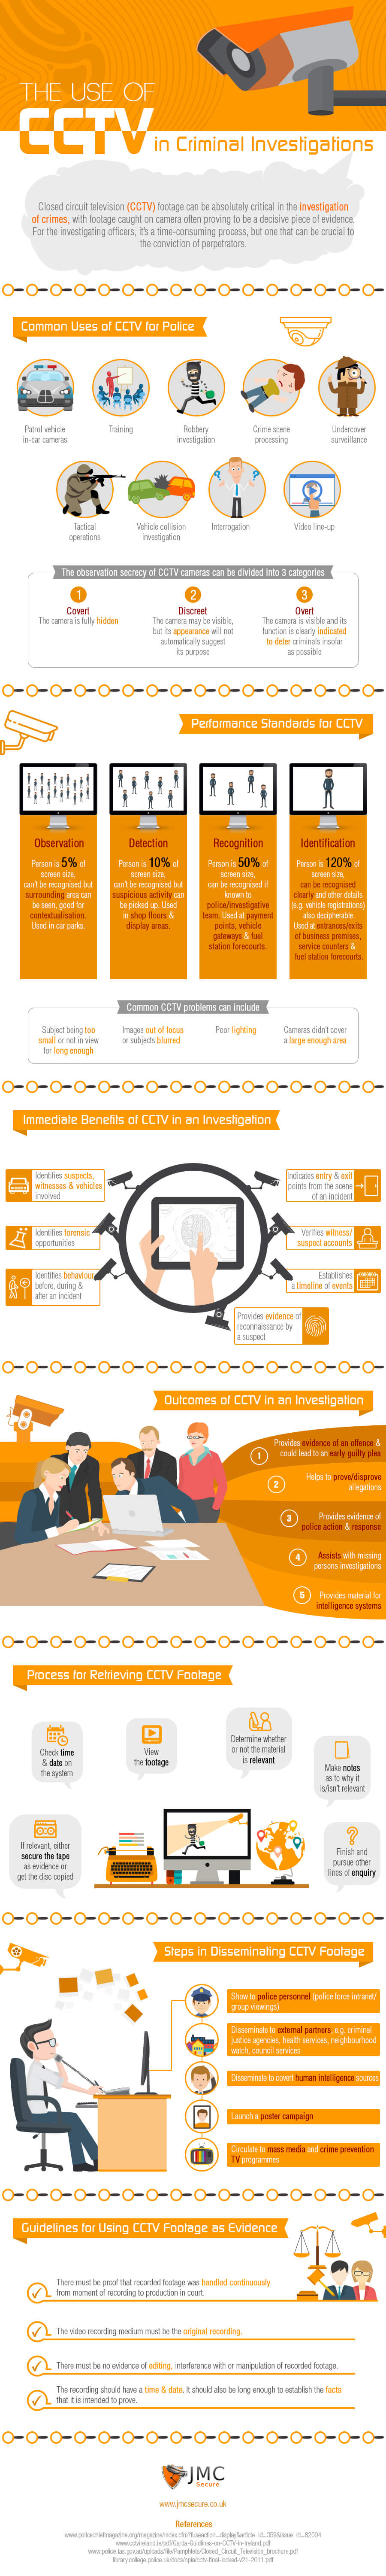 How CCTV is used in Criminal Investigations